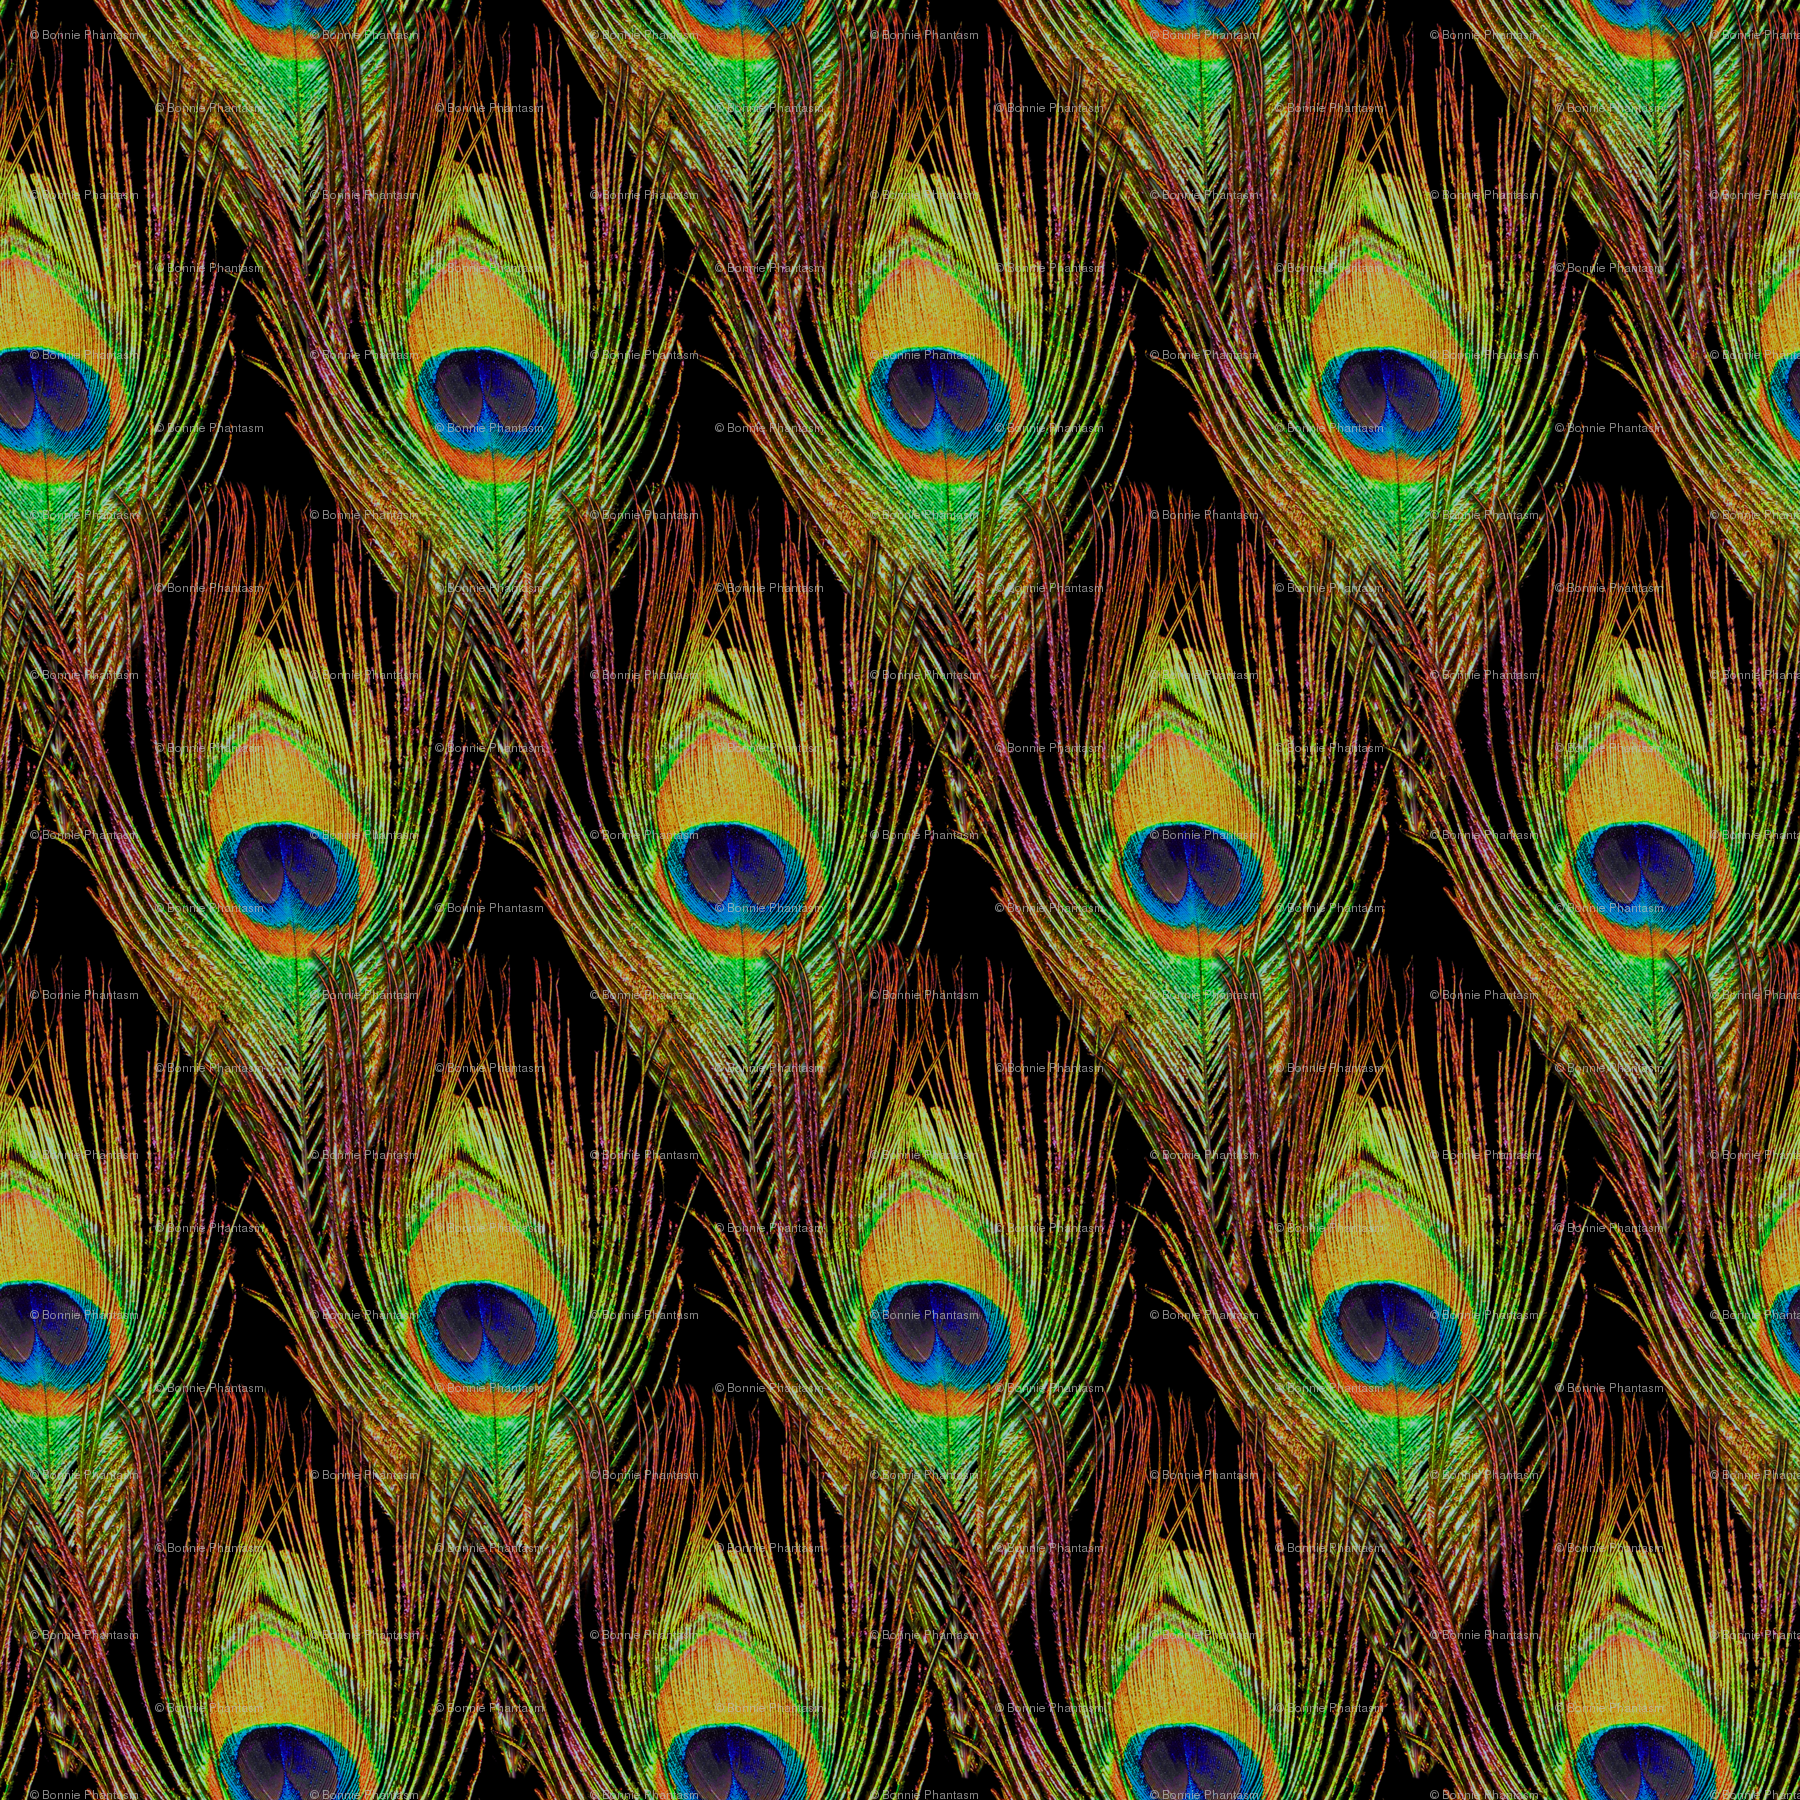 peacock feather wallpaper - DriverLayer Search Engine